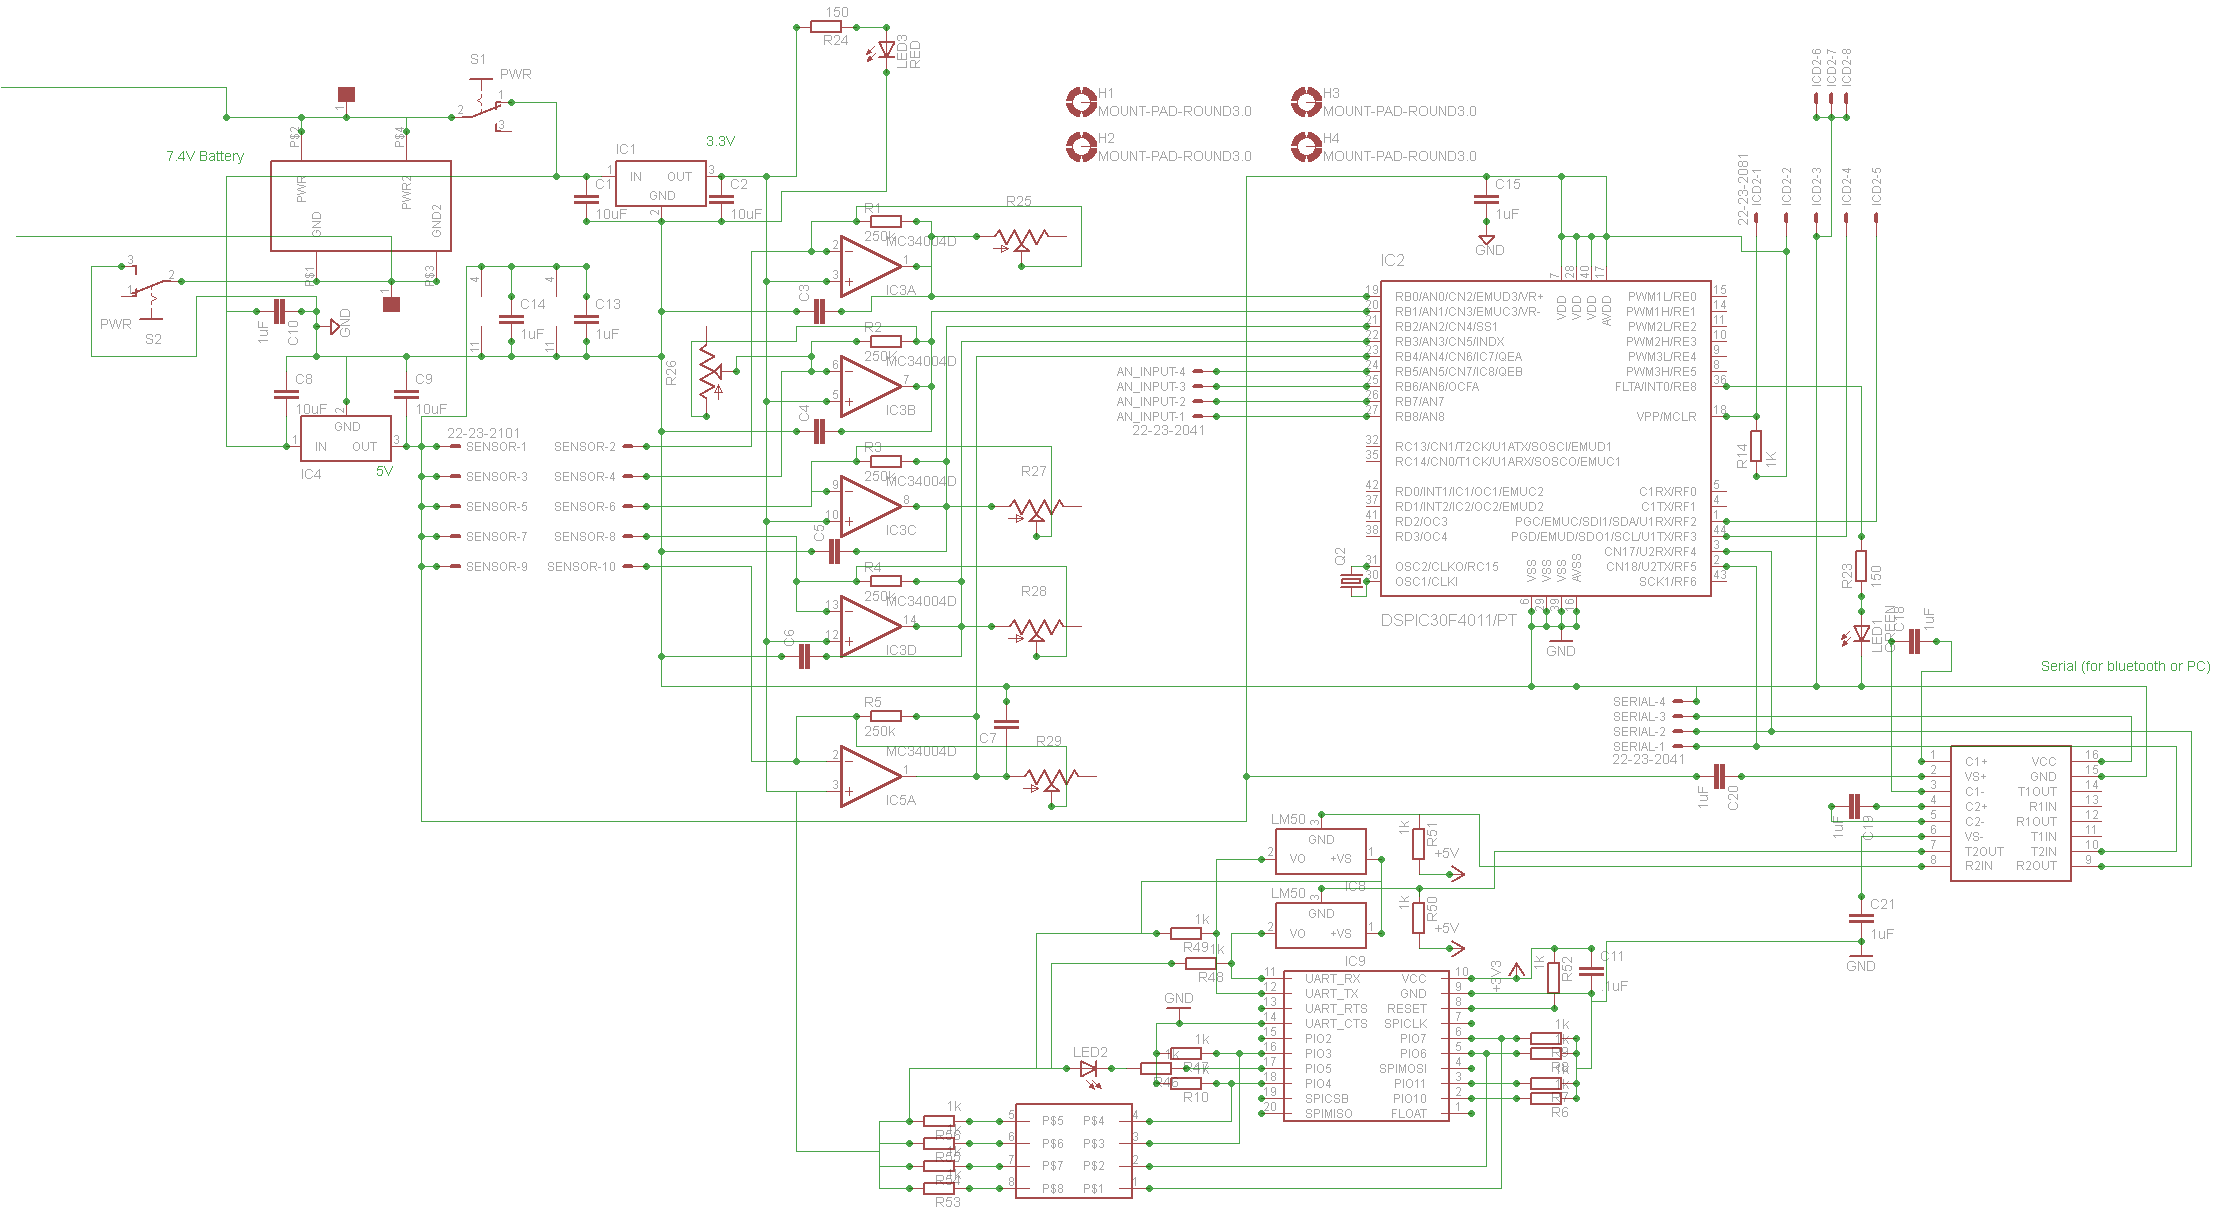 pic RN-41 bluetooth module not transmitting data - schematic